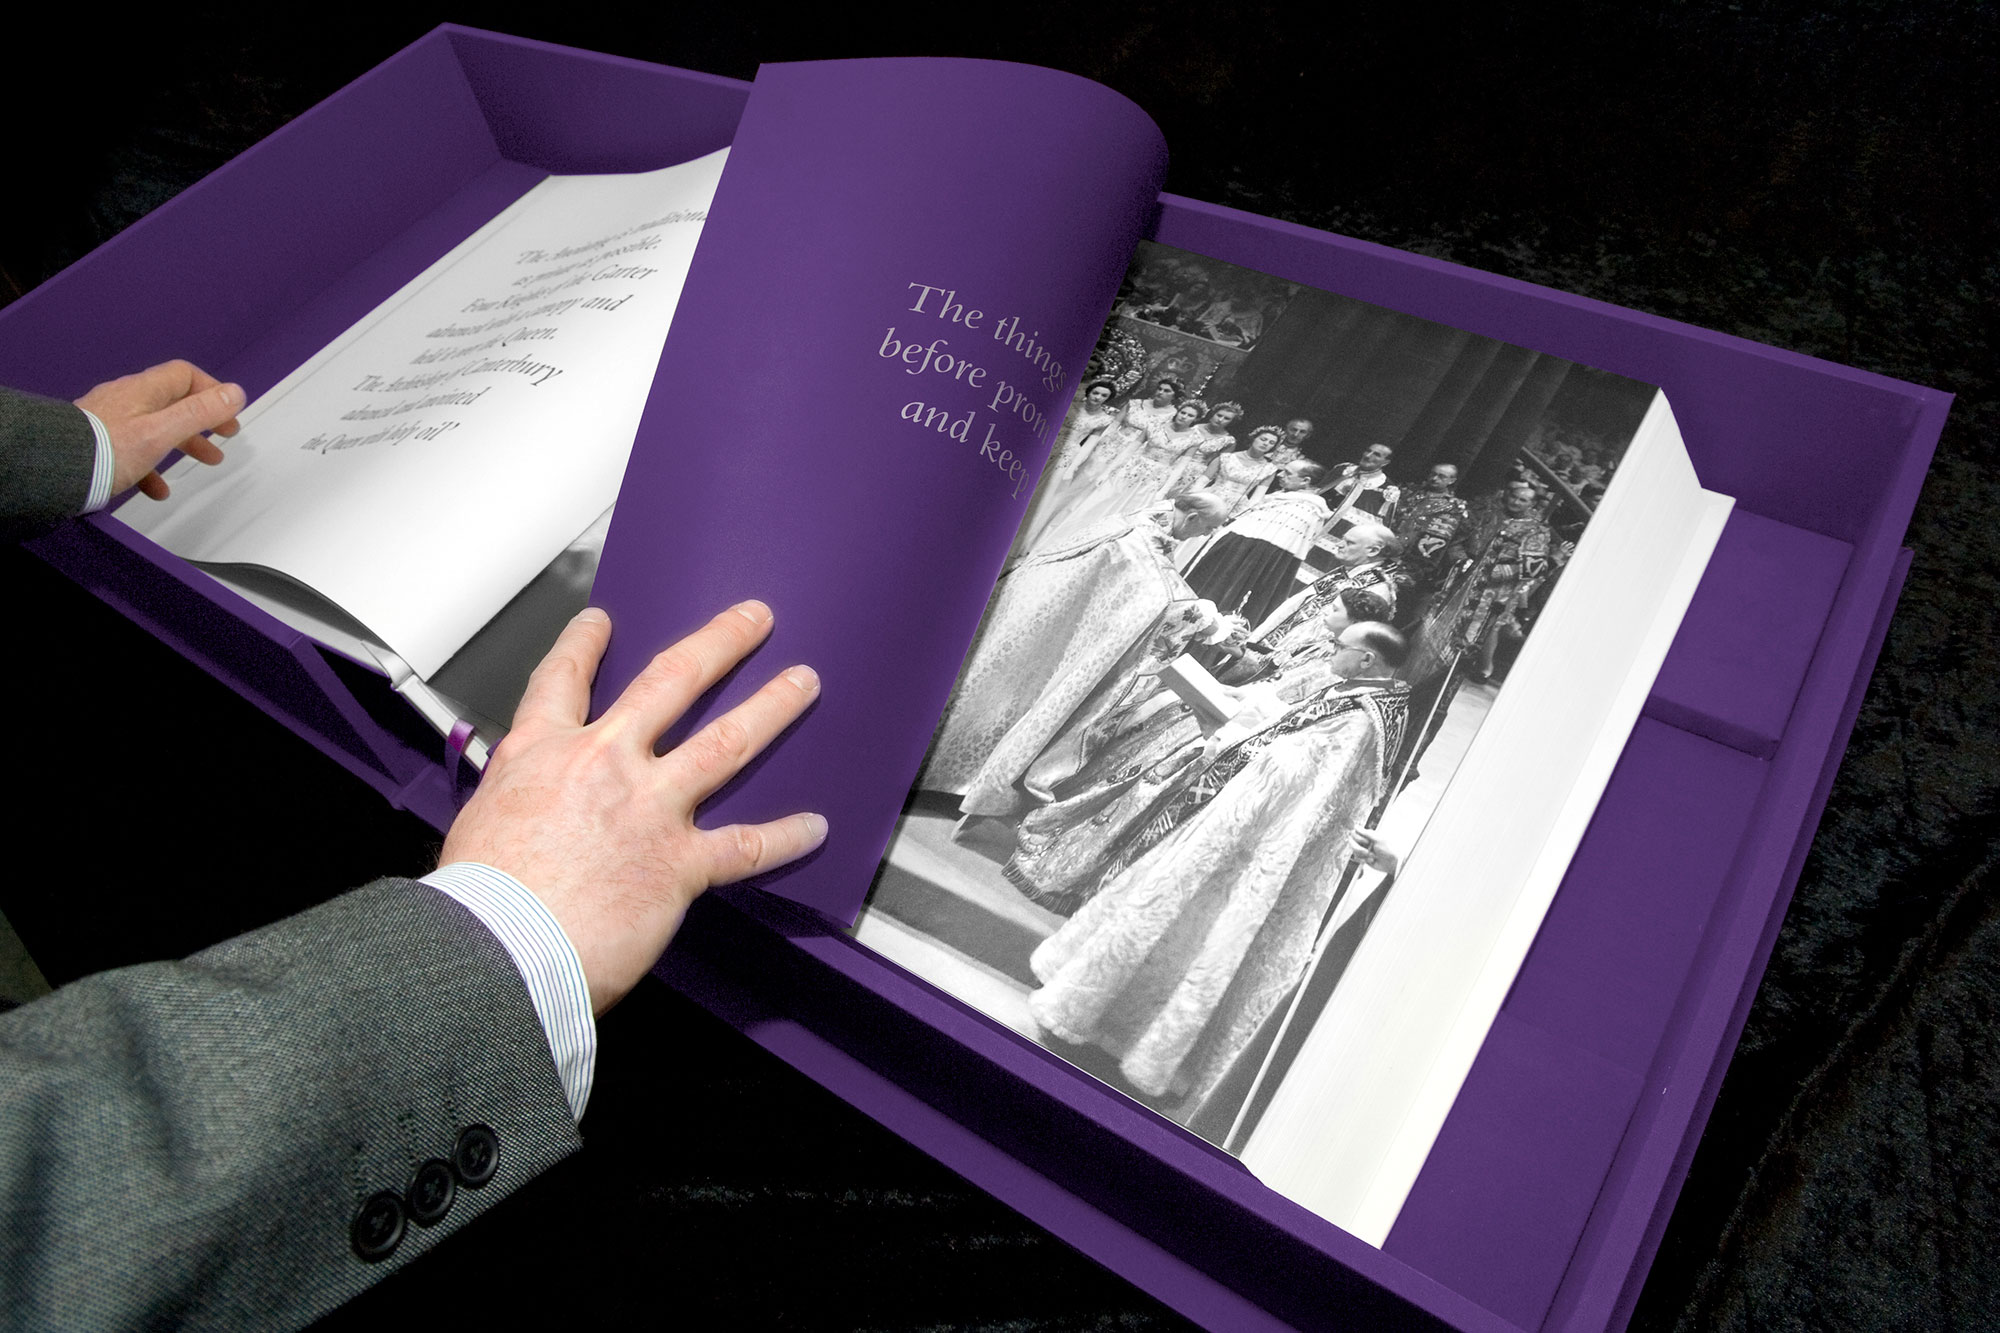 Part of a chapter about the Coronation. Book design by Martin Sully.